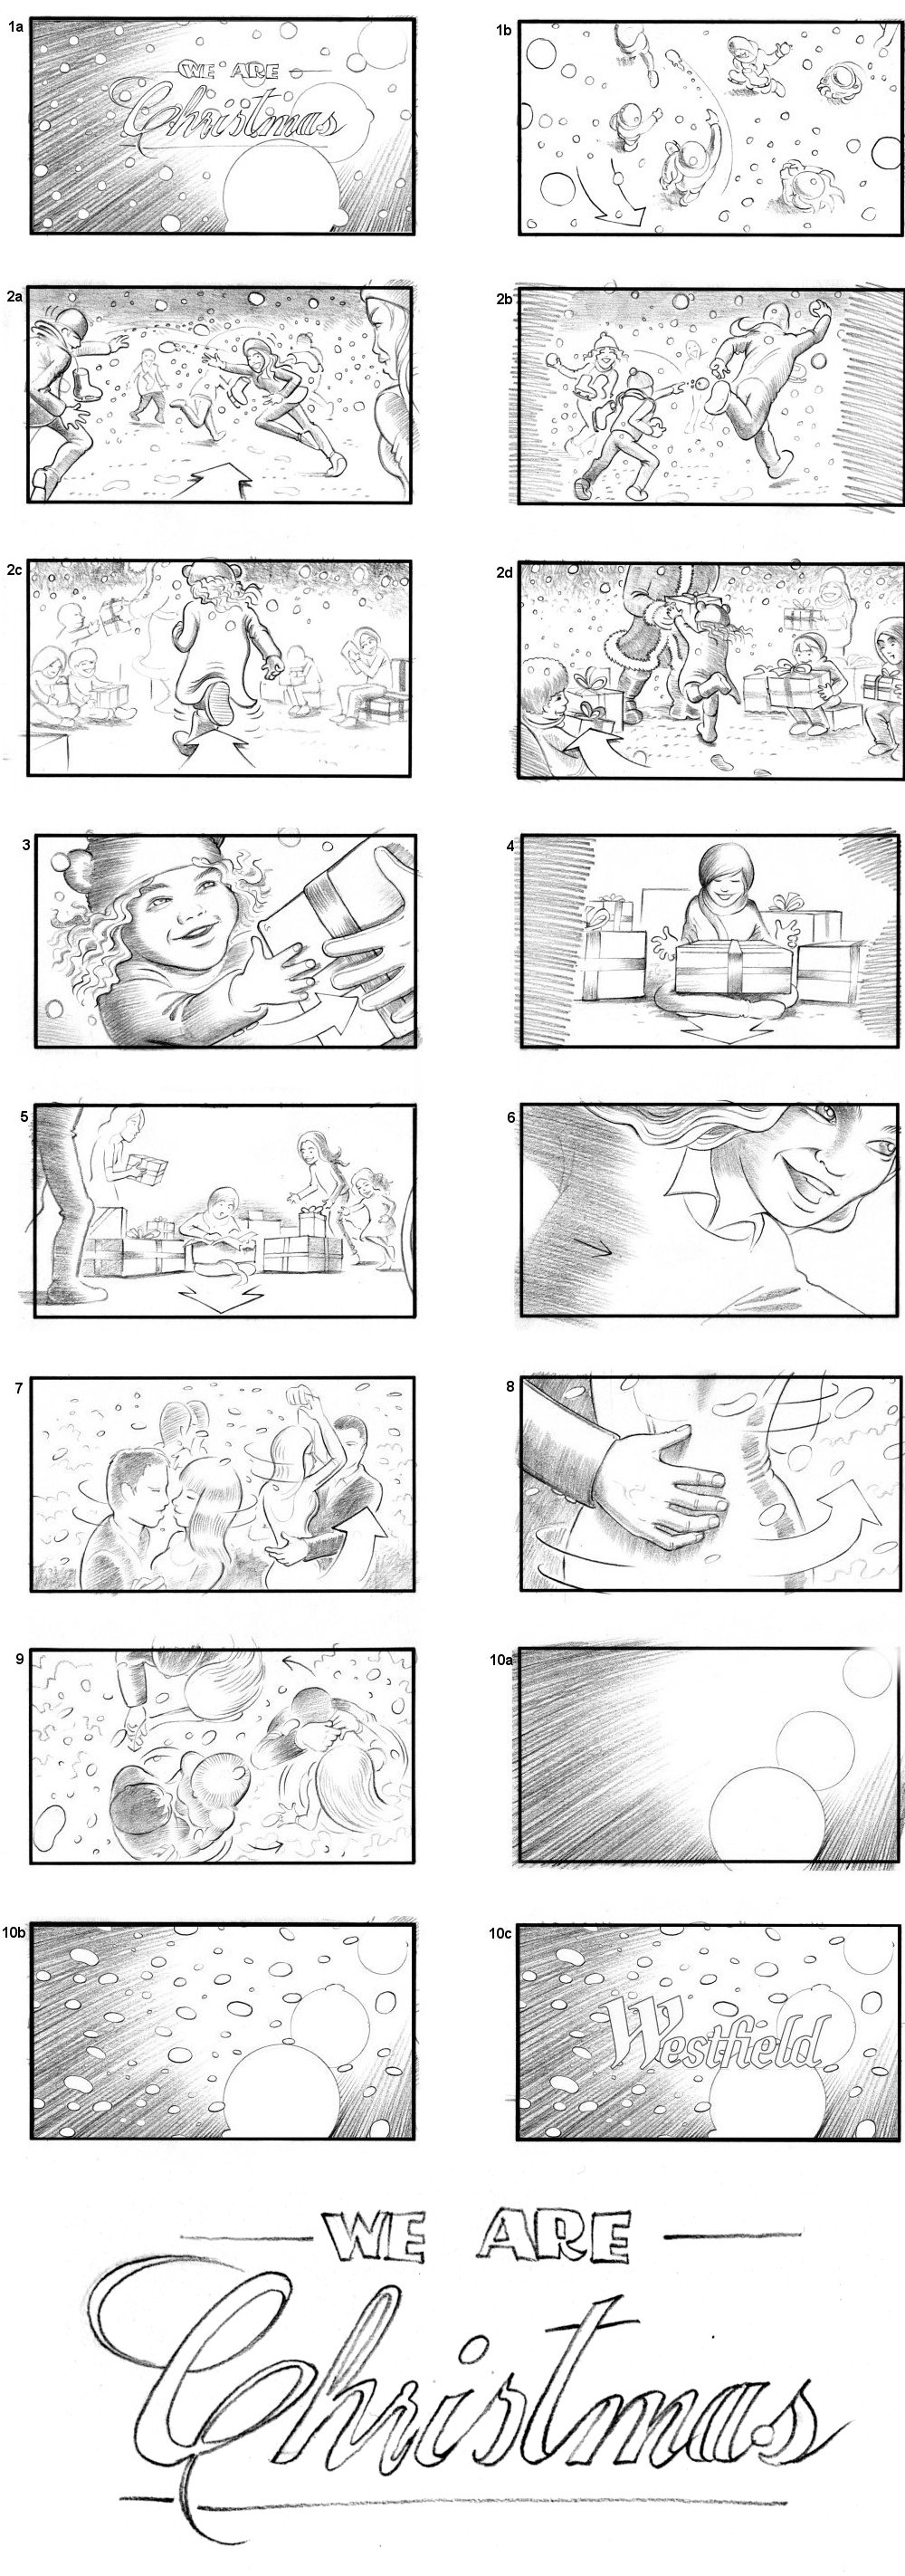 WESTFIELDS SHOPPING MALL STORYBOARD BY ANDY SPARROW